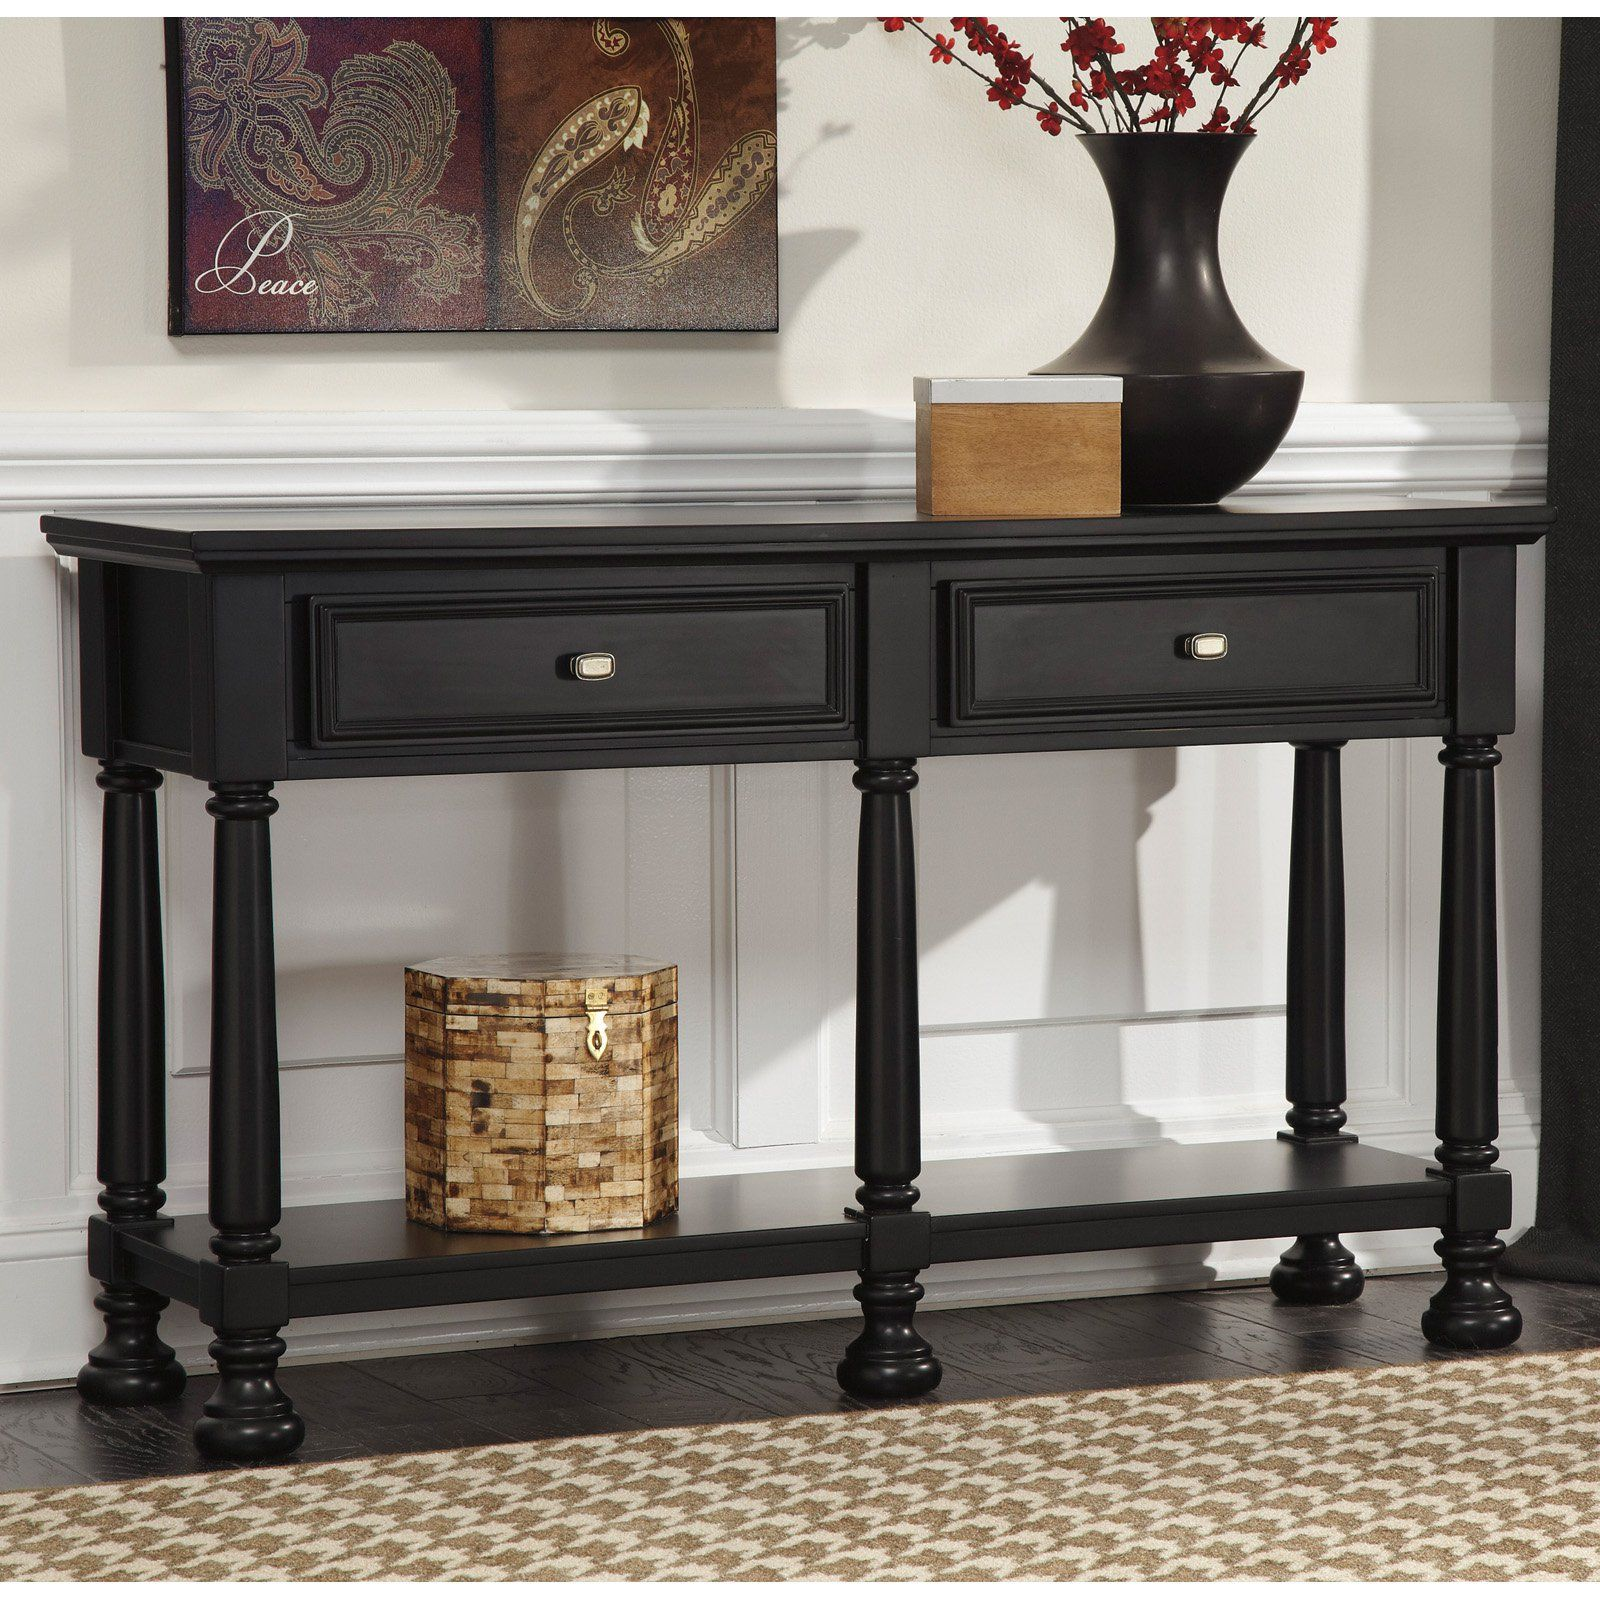 Signature Design By Ashley Landiburg Rectangular Black Sofa Table 273 52 Hayneedle